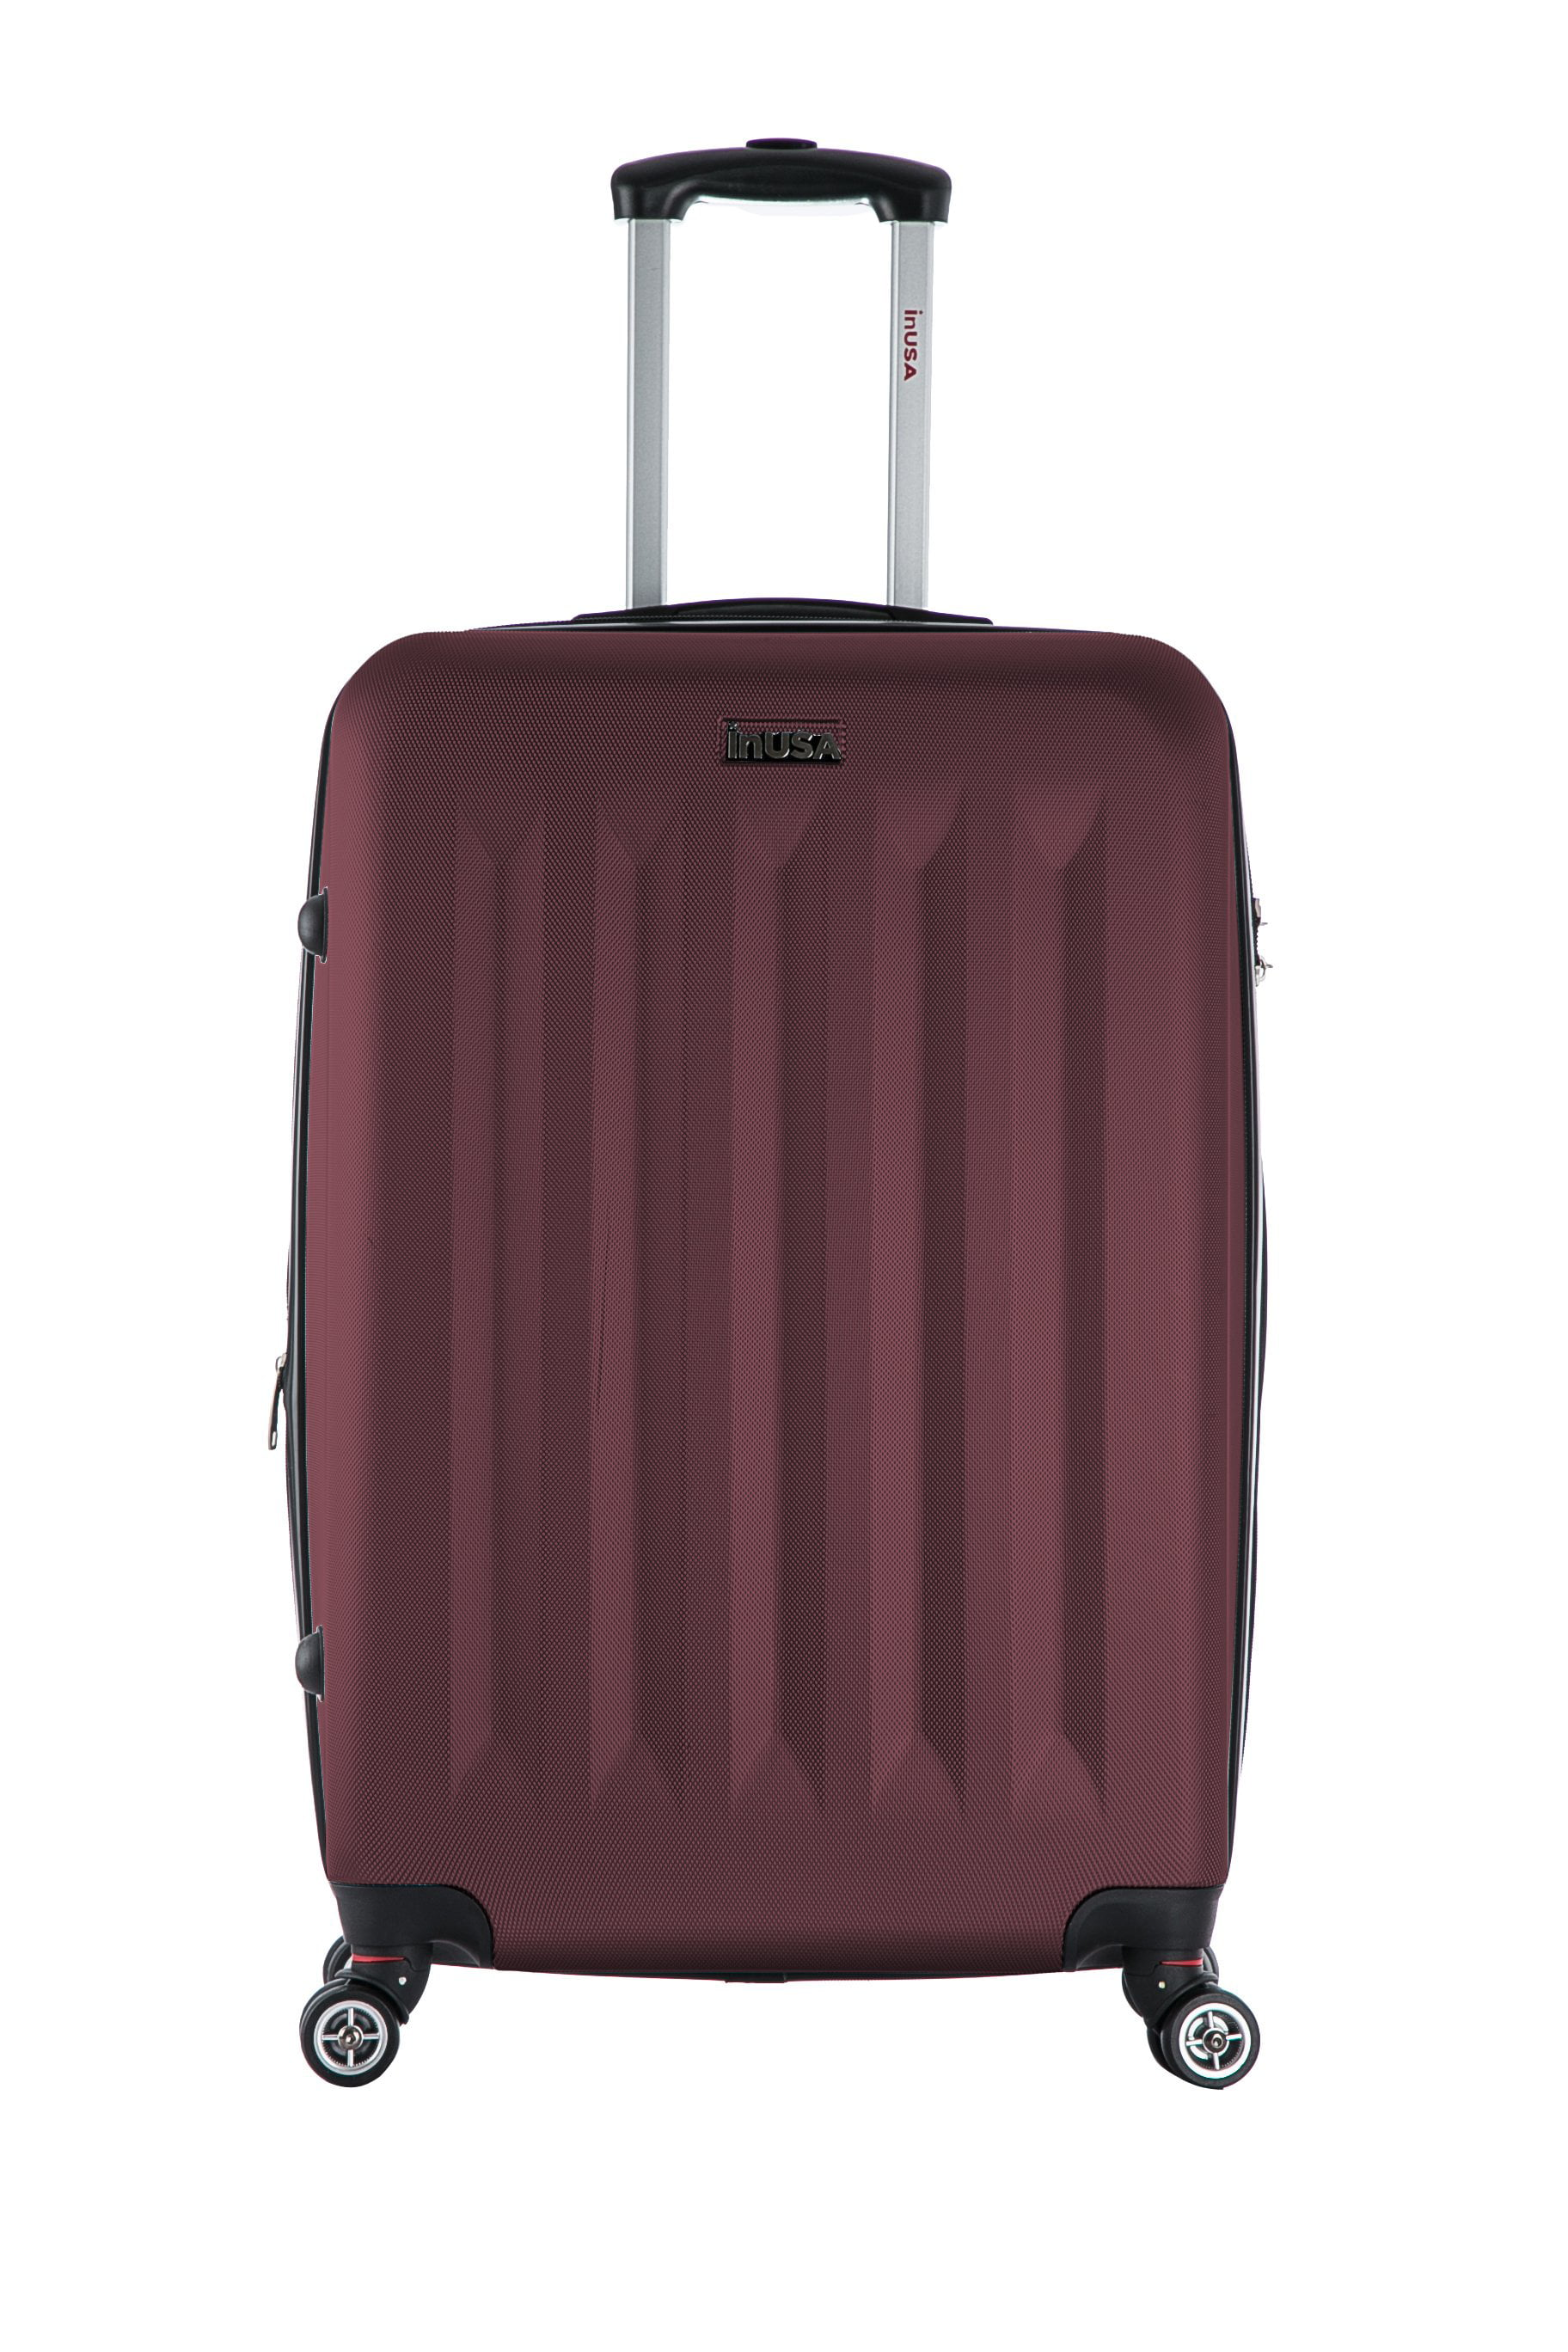 "InUSA Philadelphia 27"" Hardside Spinner Suitcase - Wine"